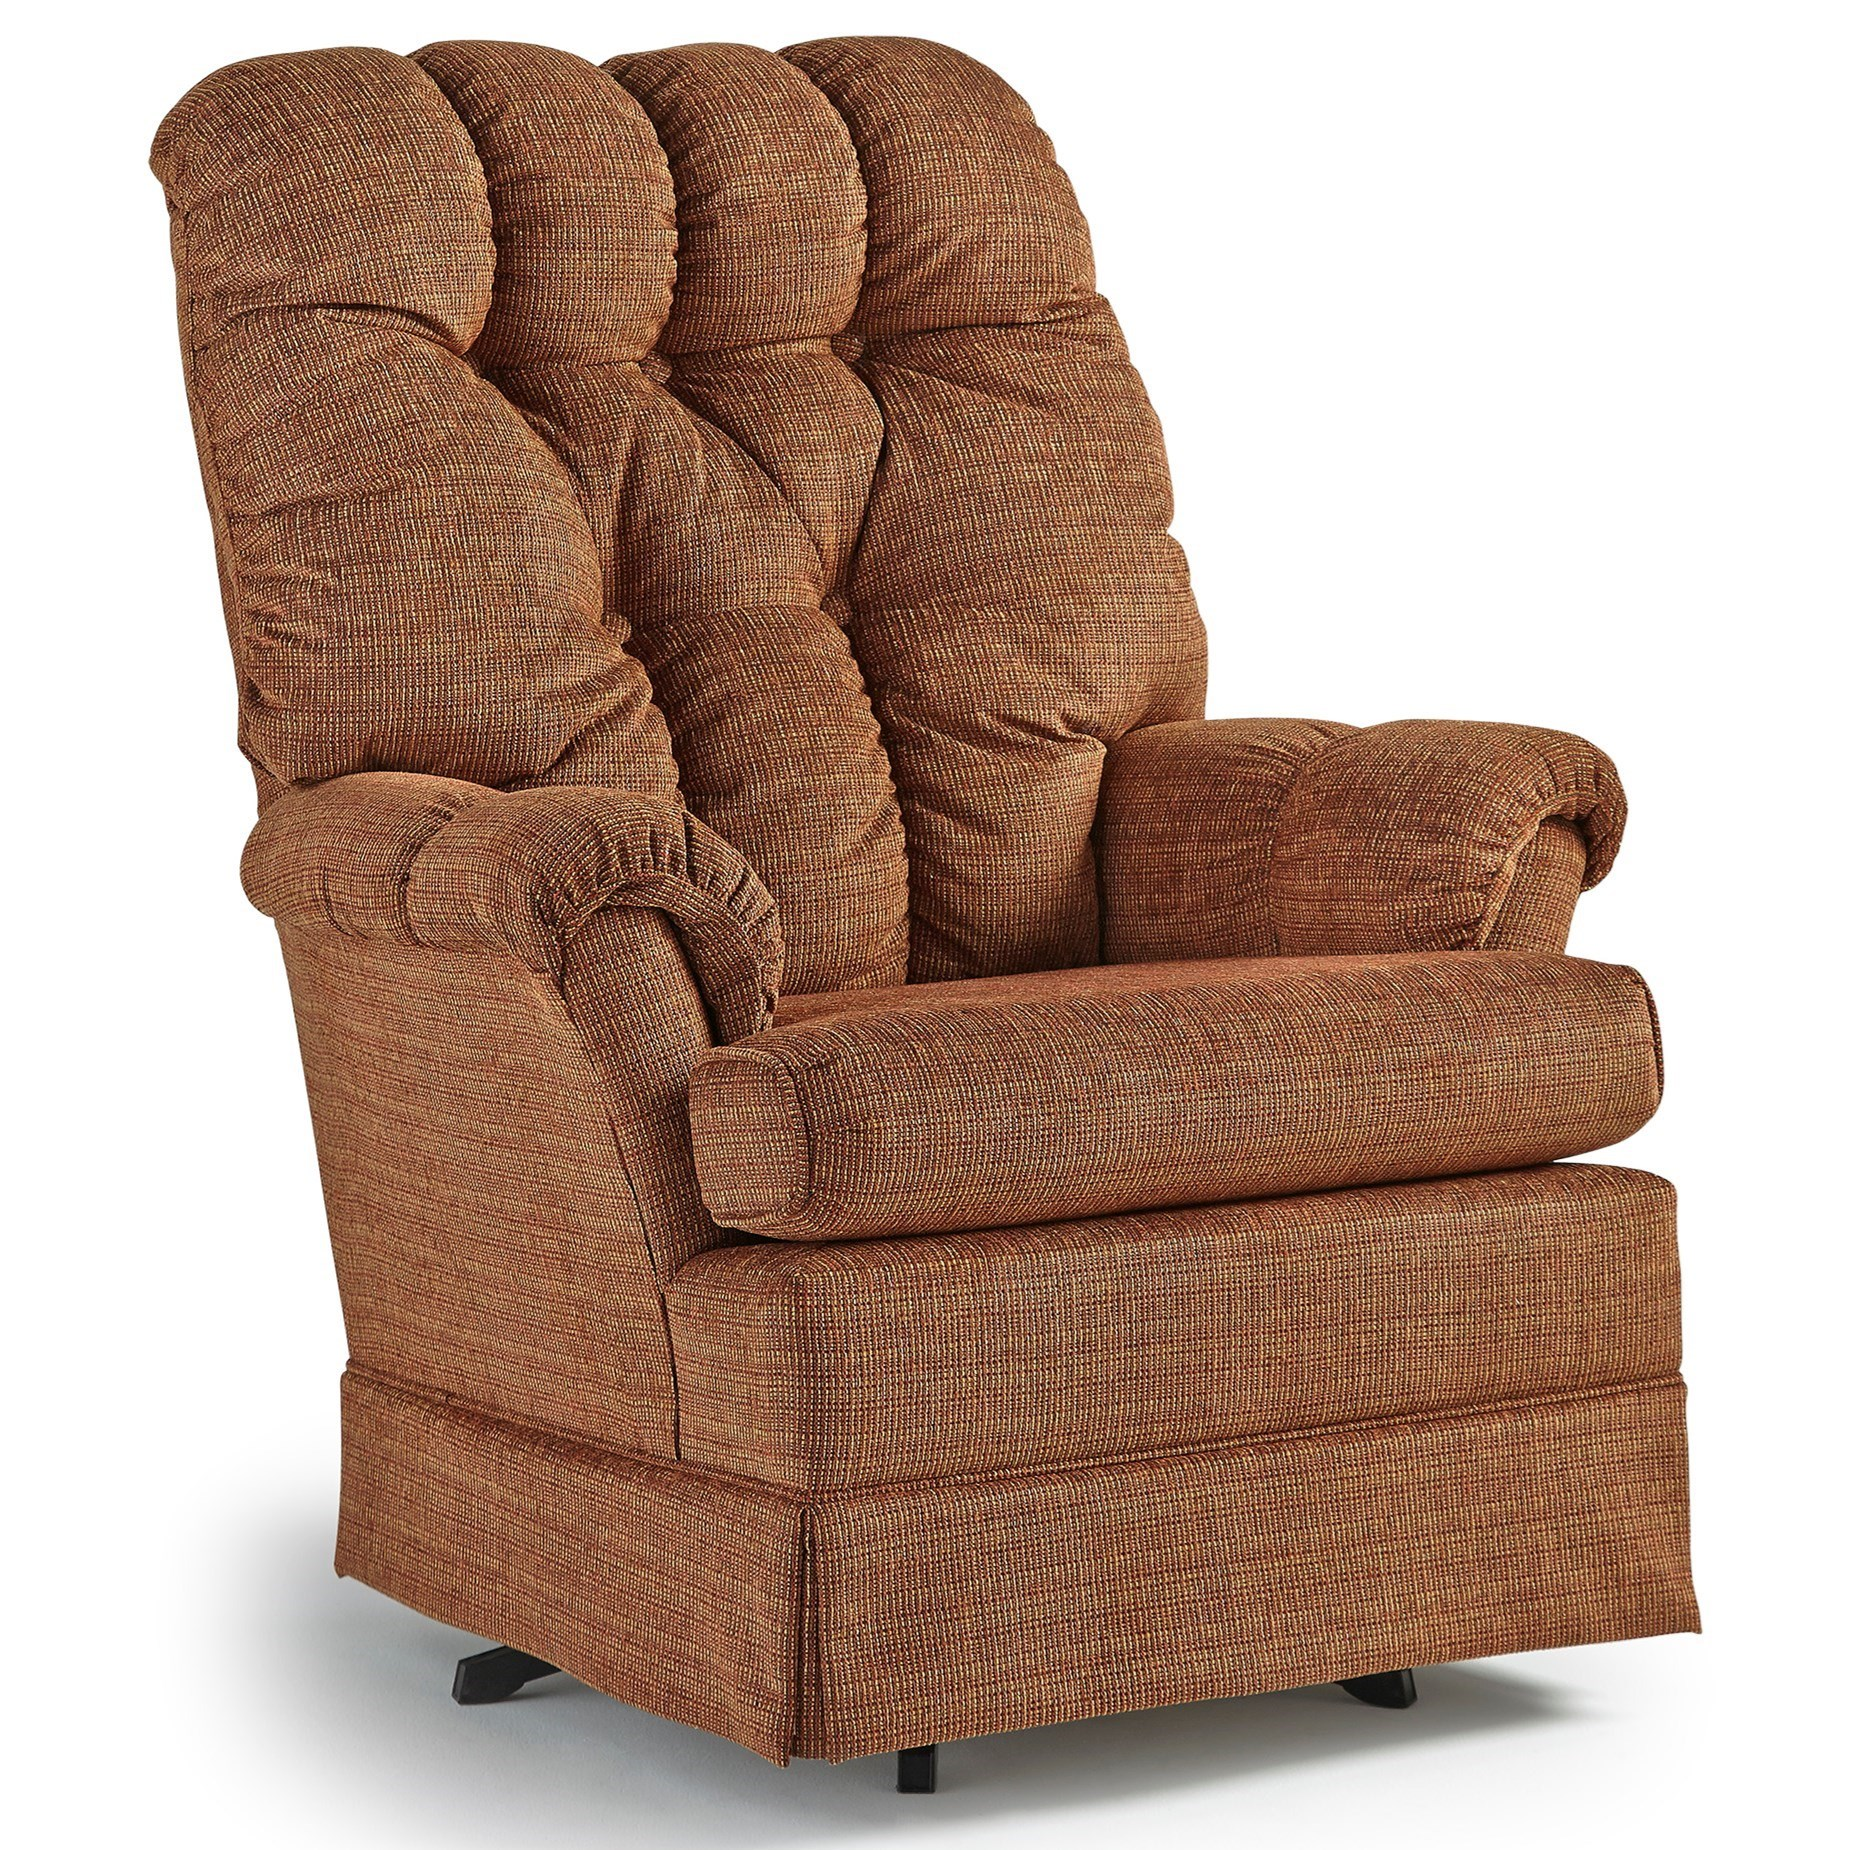 Best Home Furnishings Chairs - Swivel Glide Biscay Swivel Glider Chair - Item Number: 1936